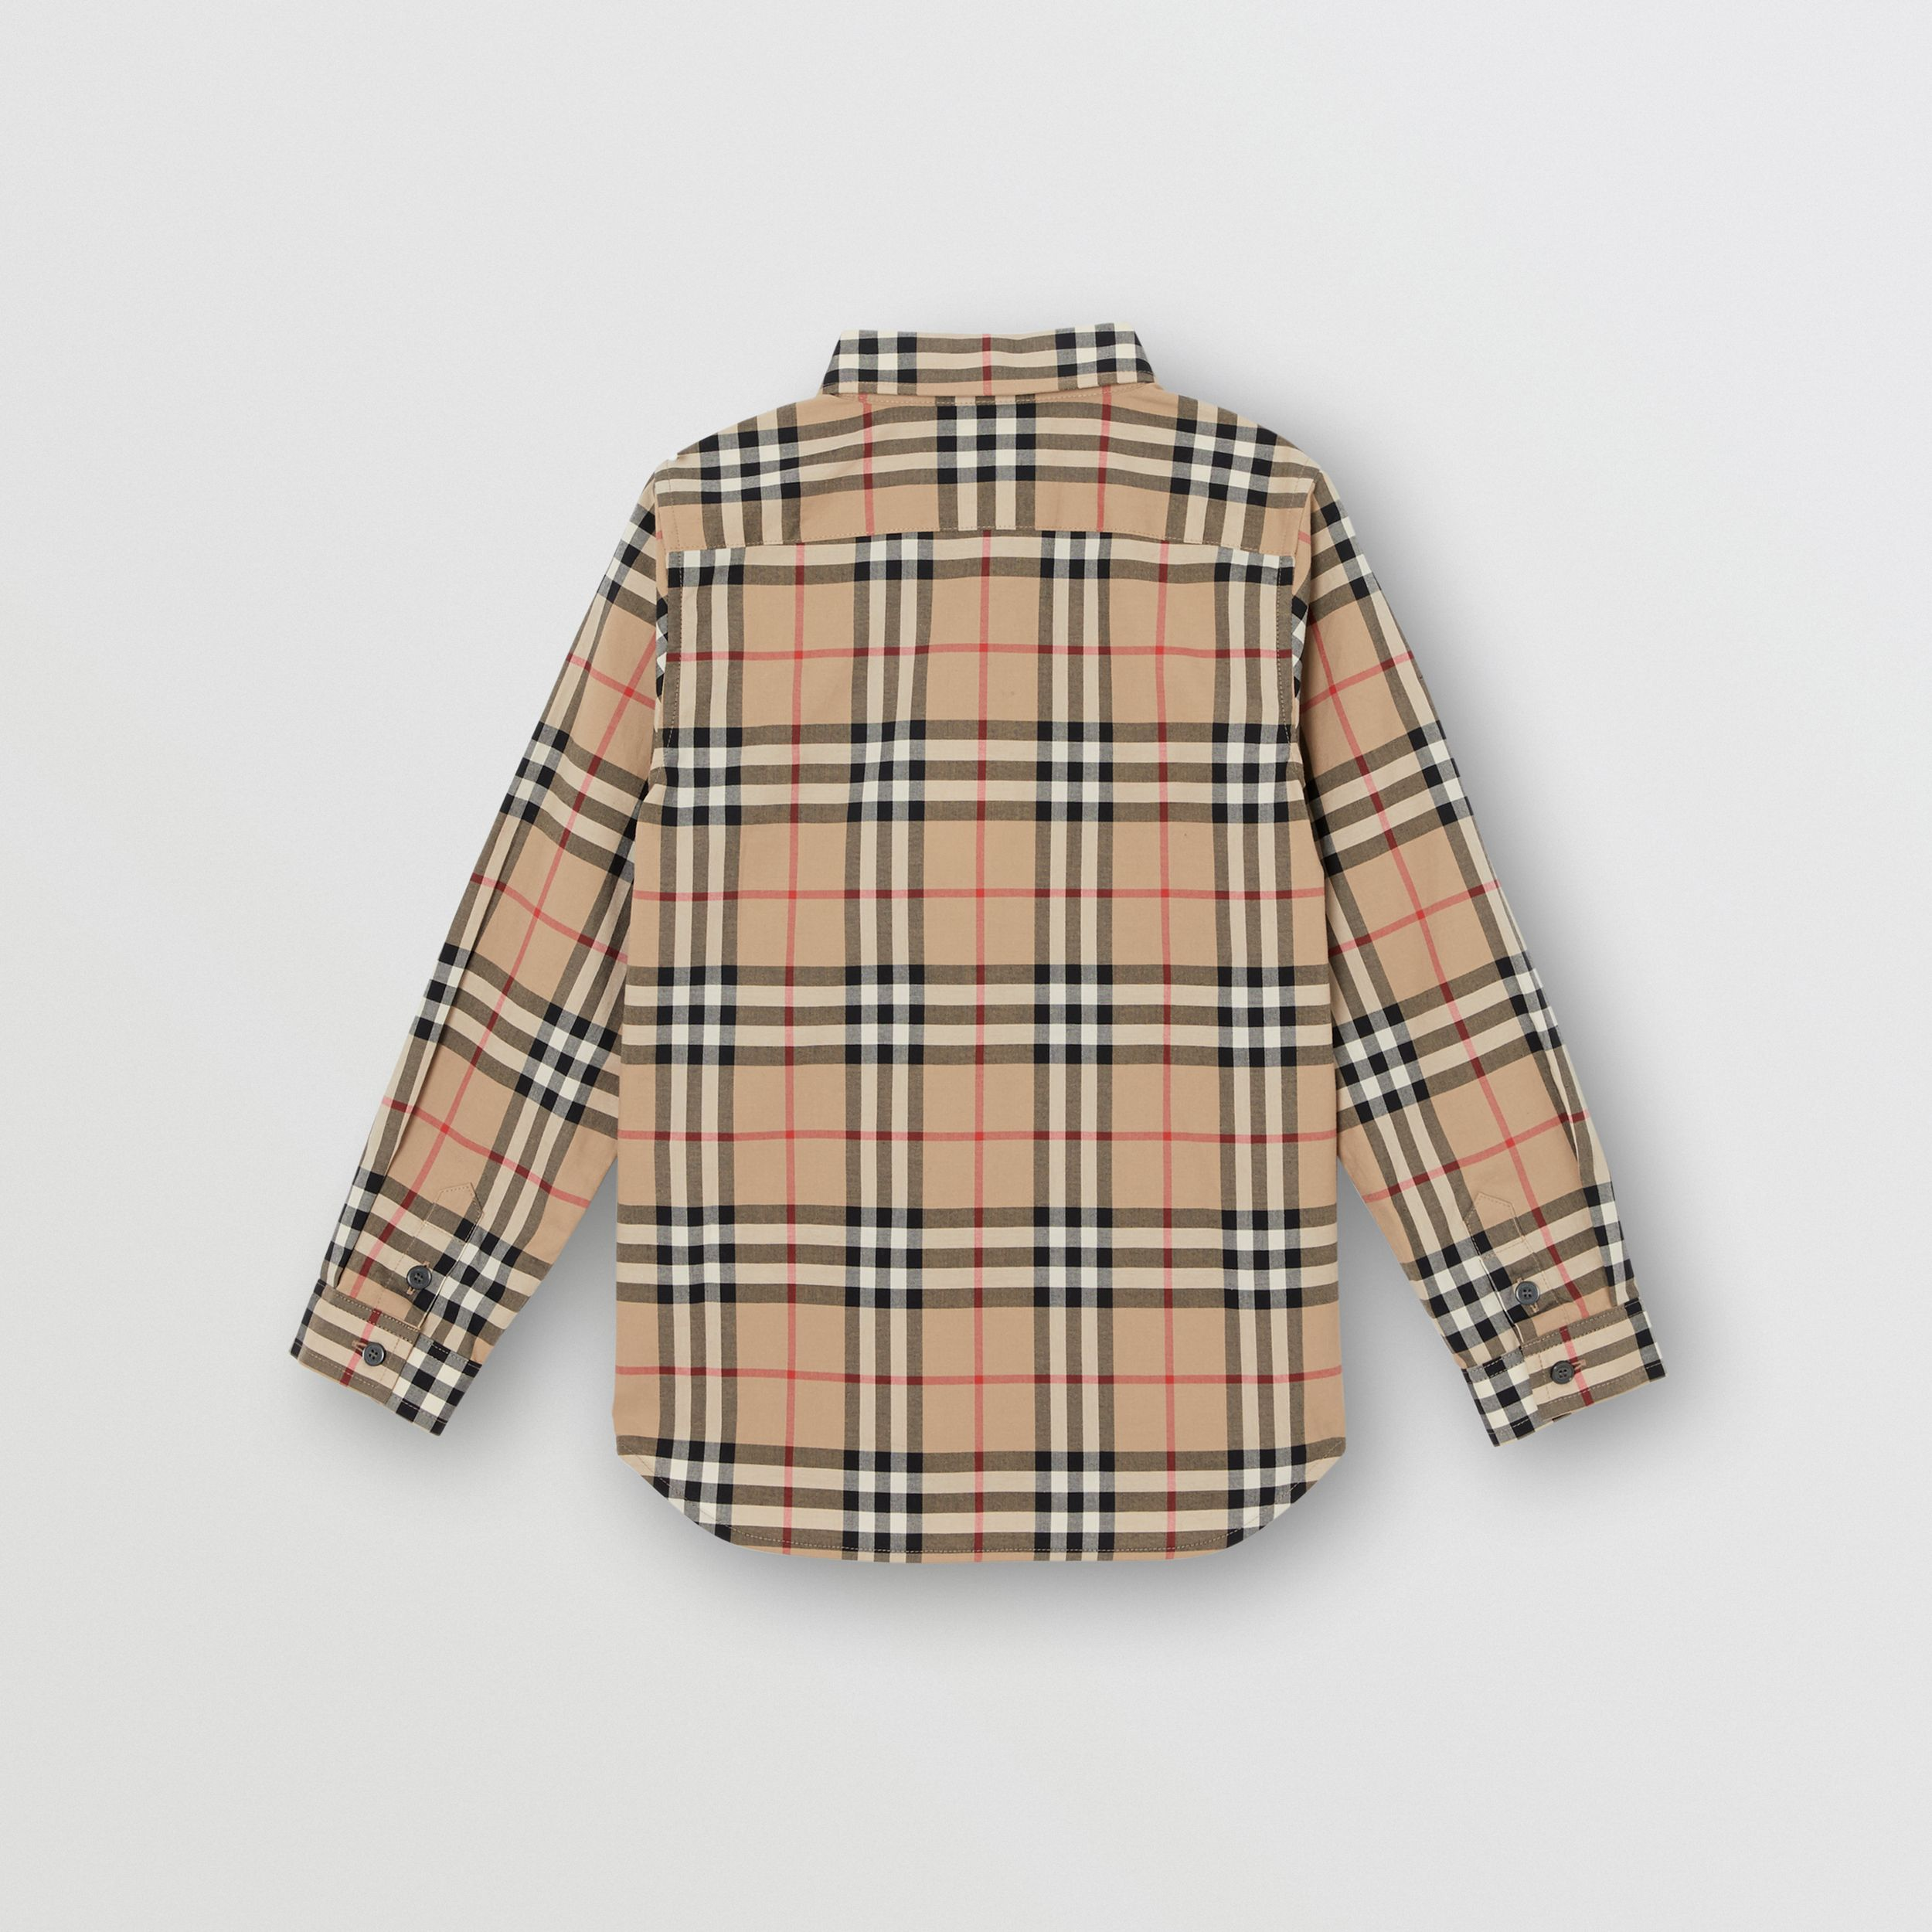 Vintage Check Cotton Poplin Shirt in Archive Beige | Burberry Australia - 3